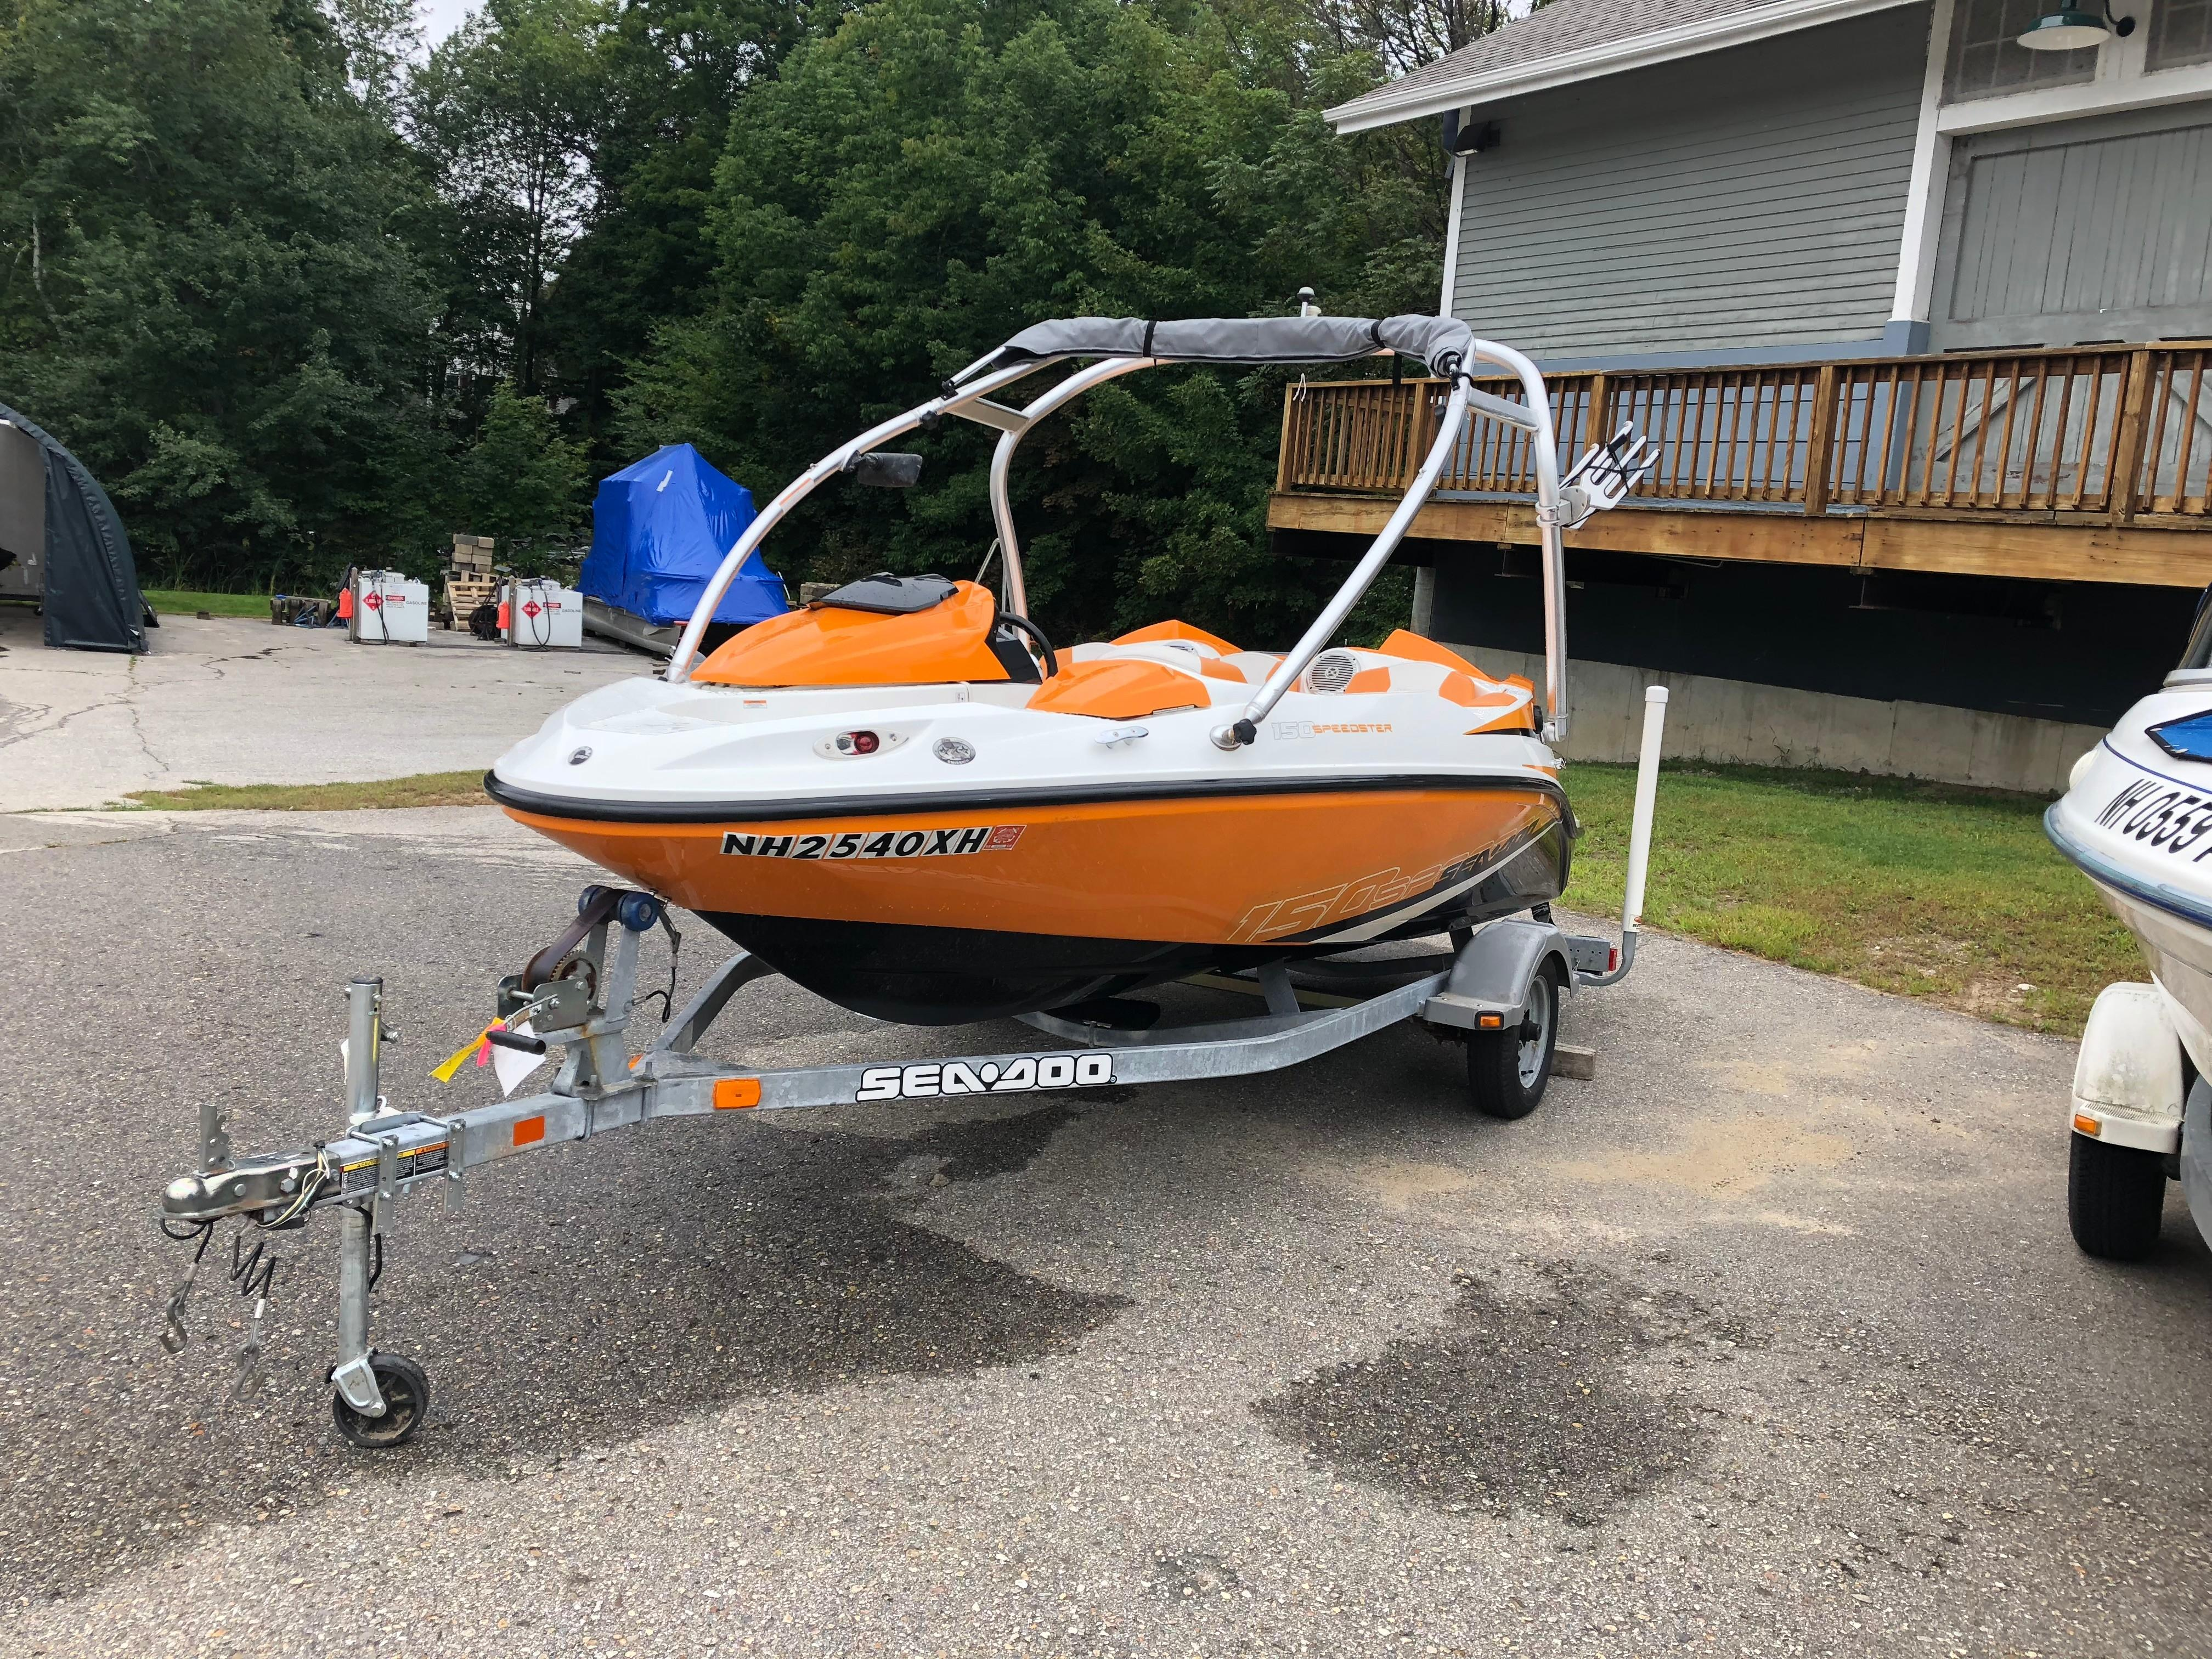 2012 Sea Doo Sportboat boat for sale, model of the boat is Speedster 150 & Image # 7 of 11